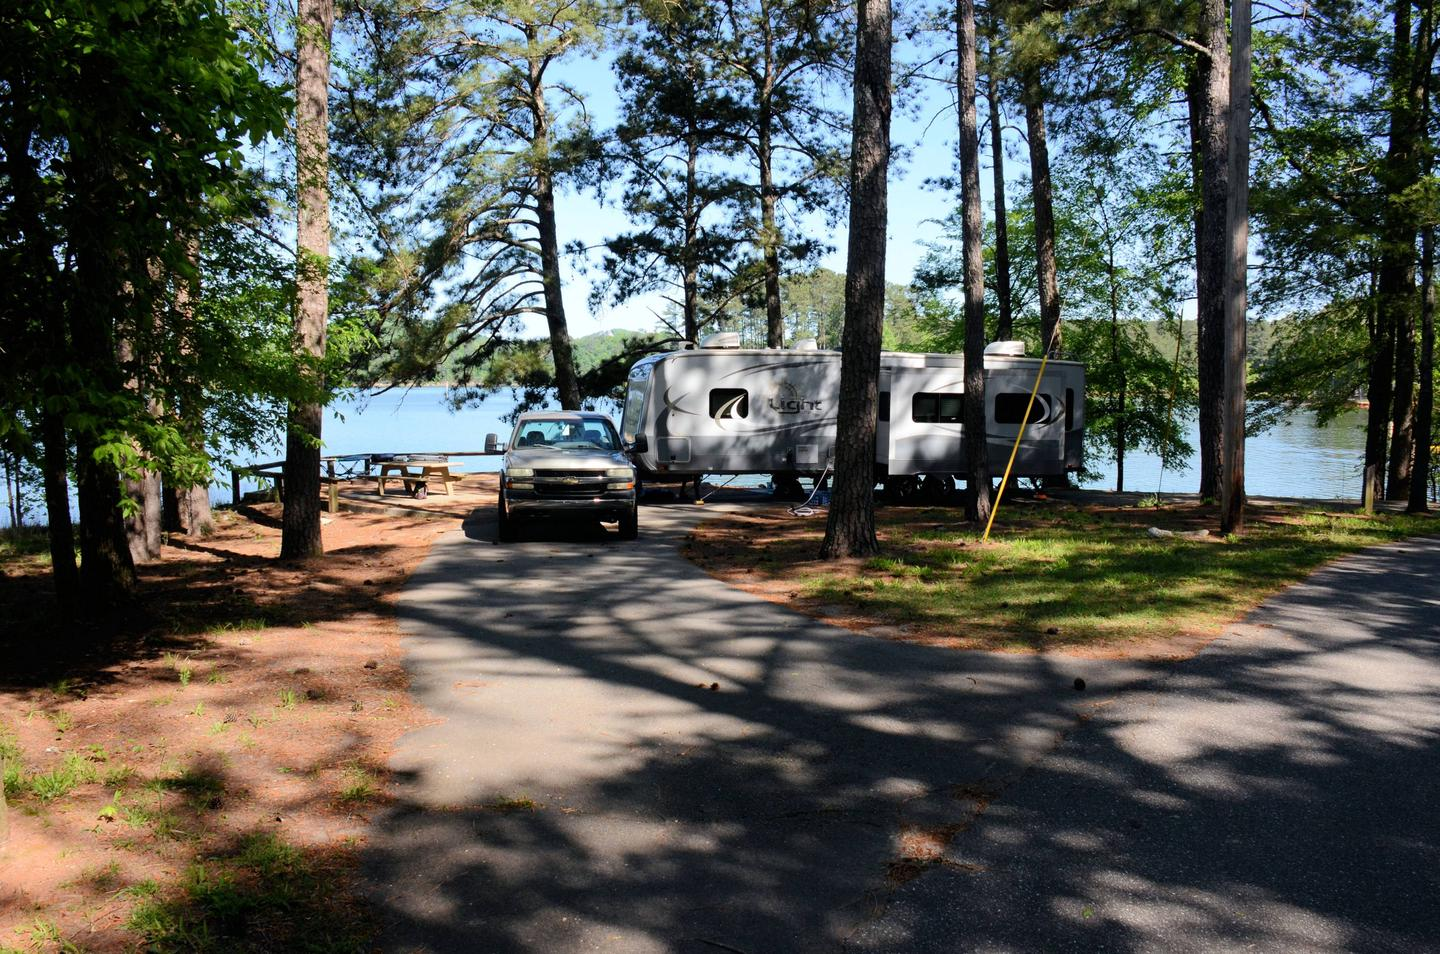 Pull-thru exit, driveway slope, tree clearance.McKinney Campground, campsite 34.